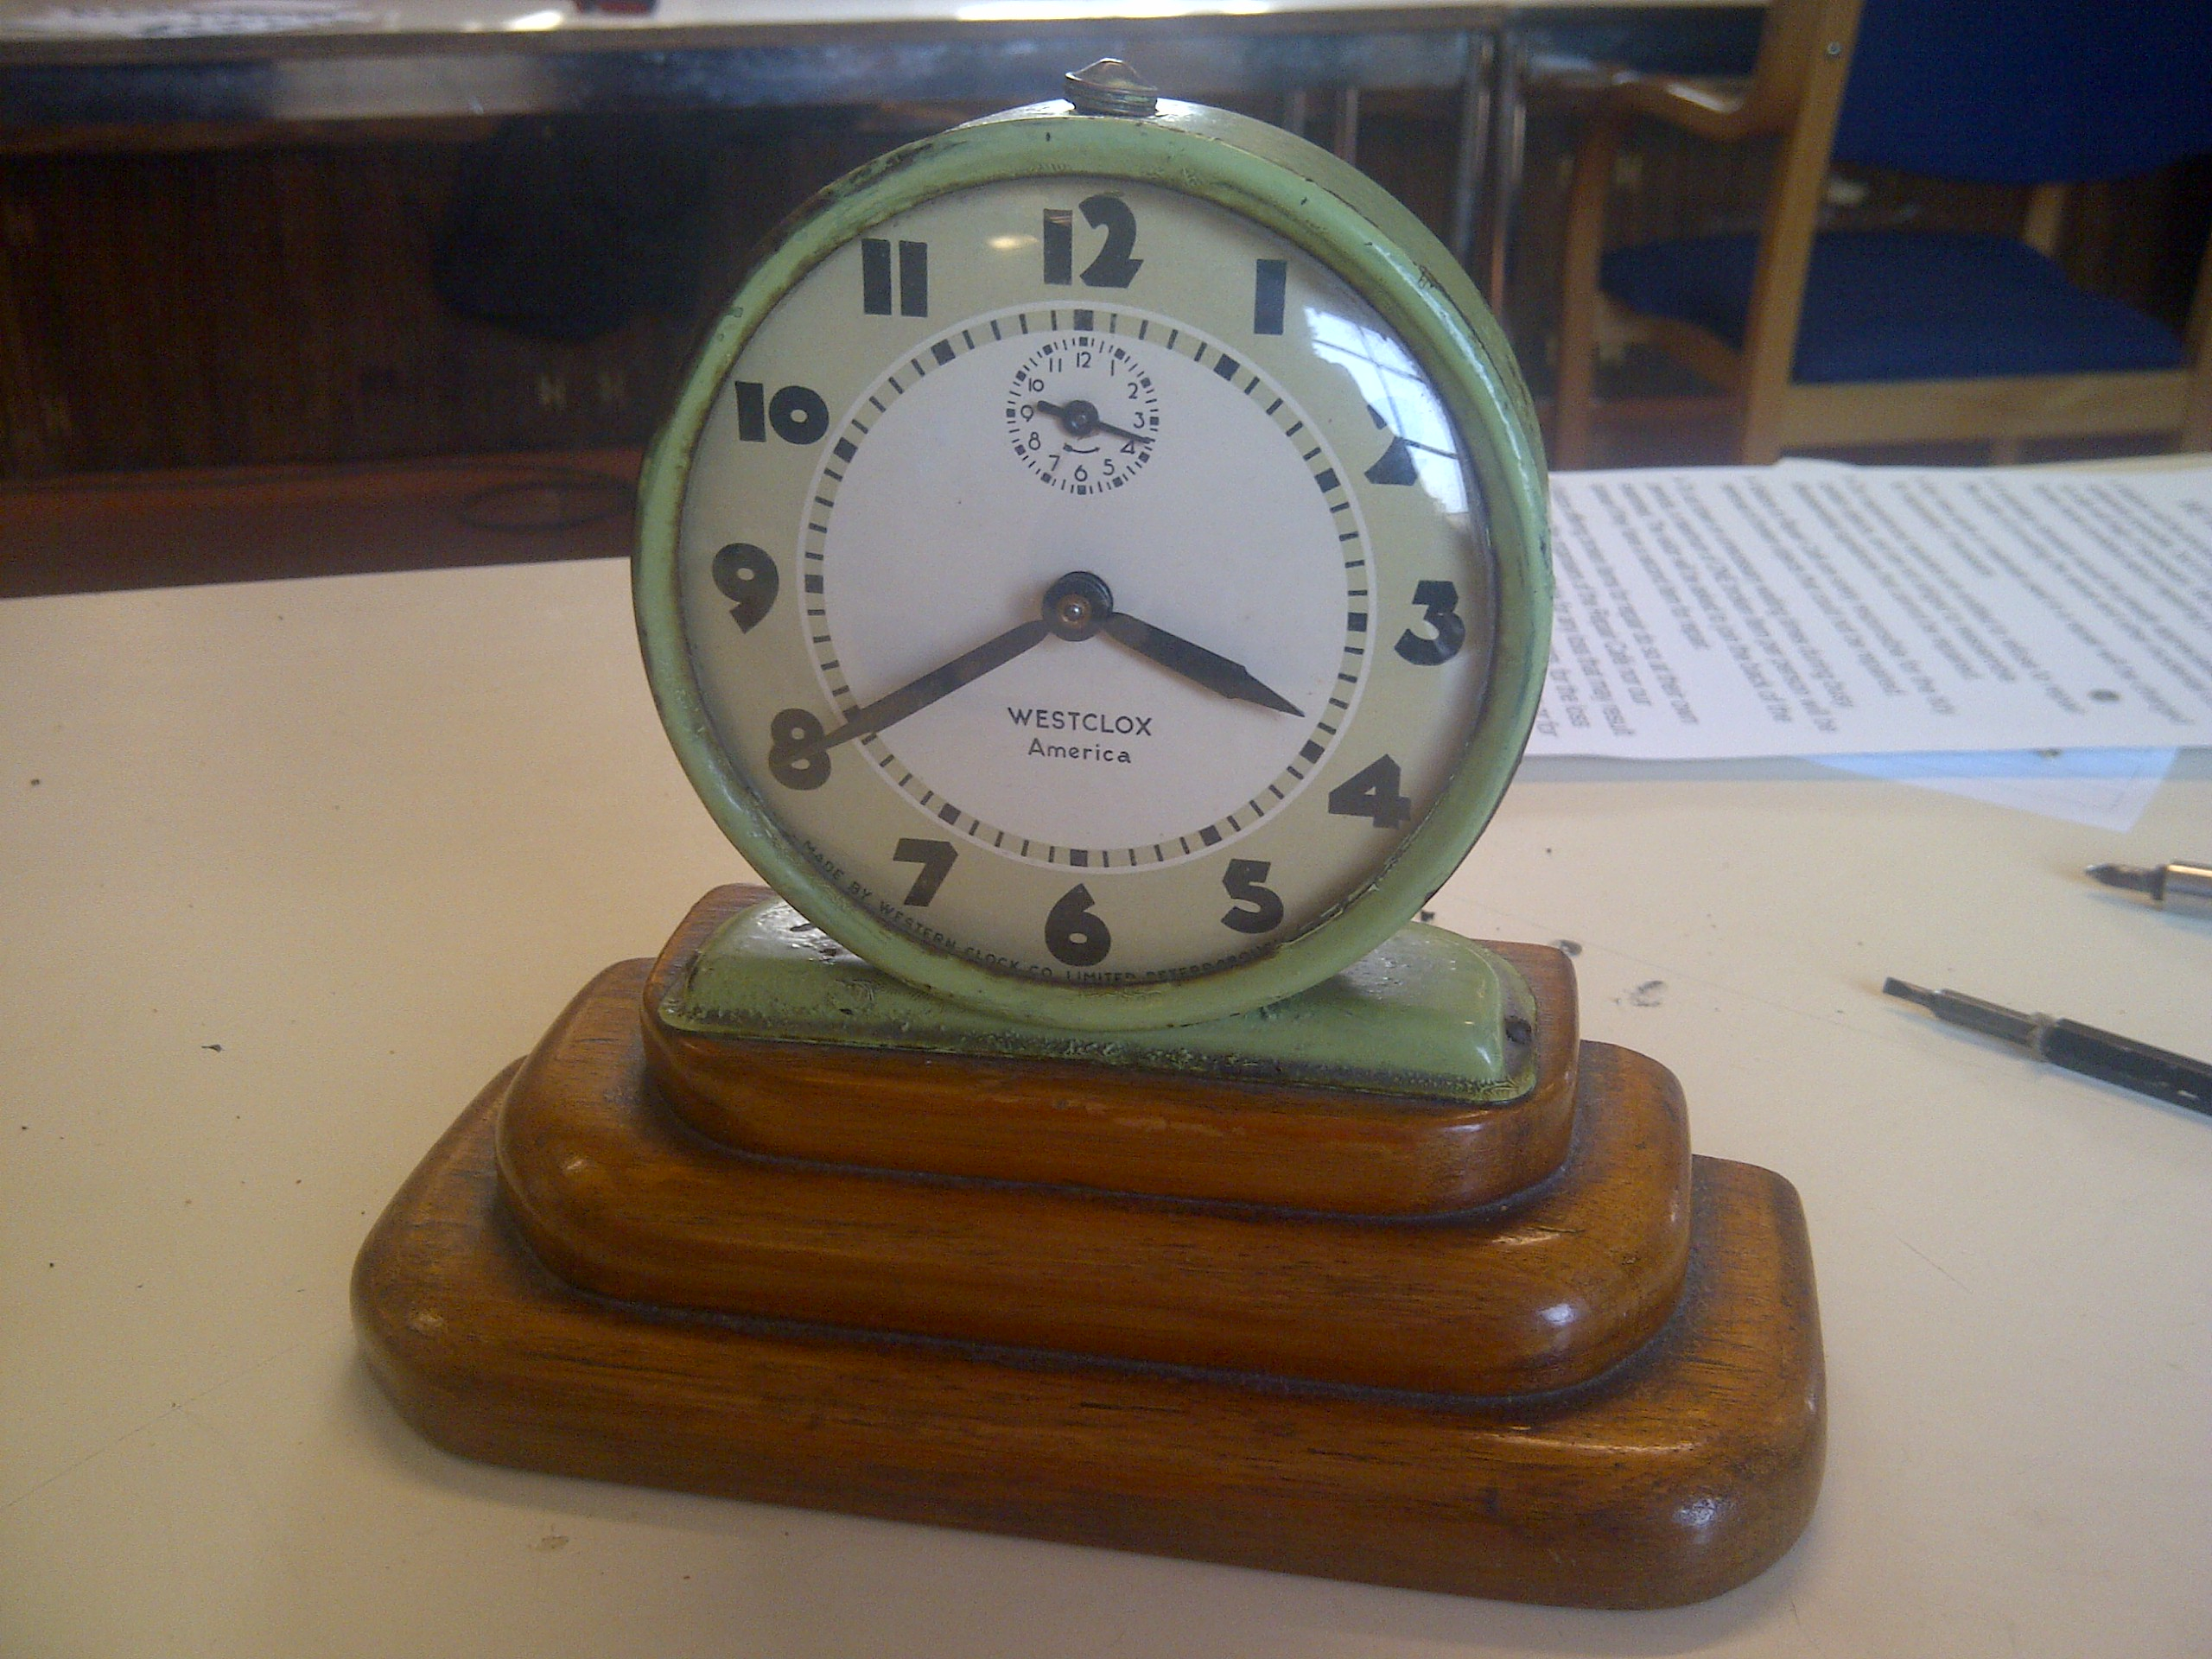 This vintage alarm clock was successfully got going again.